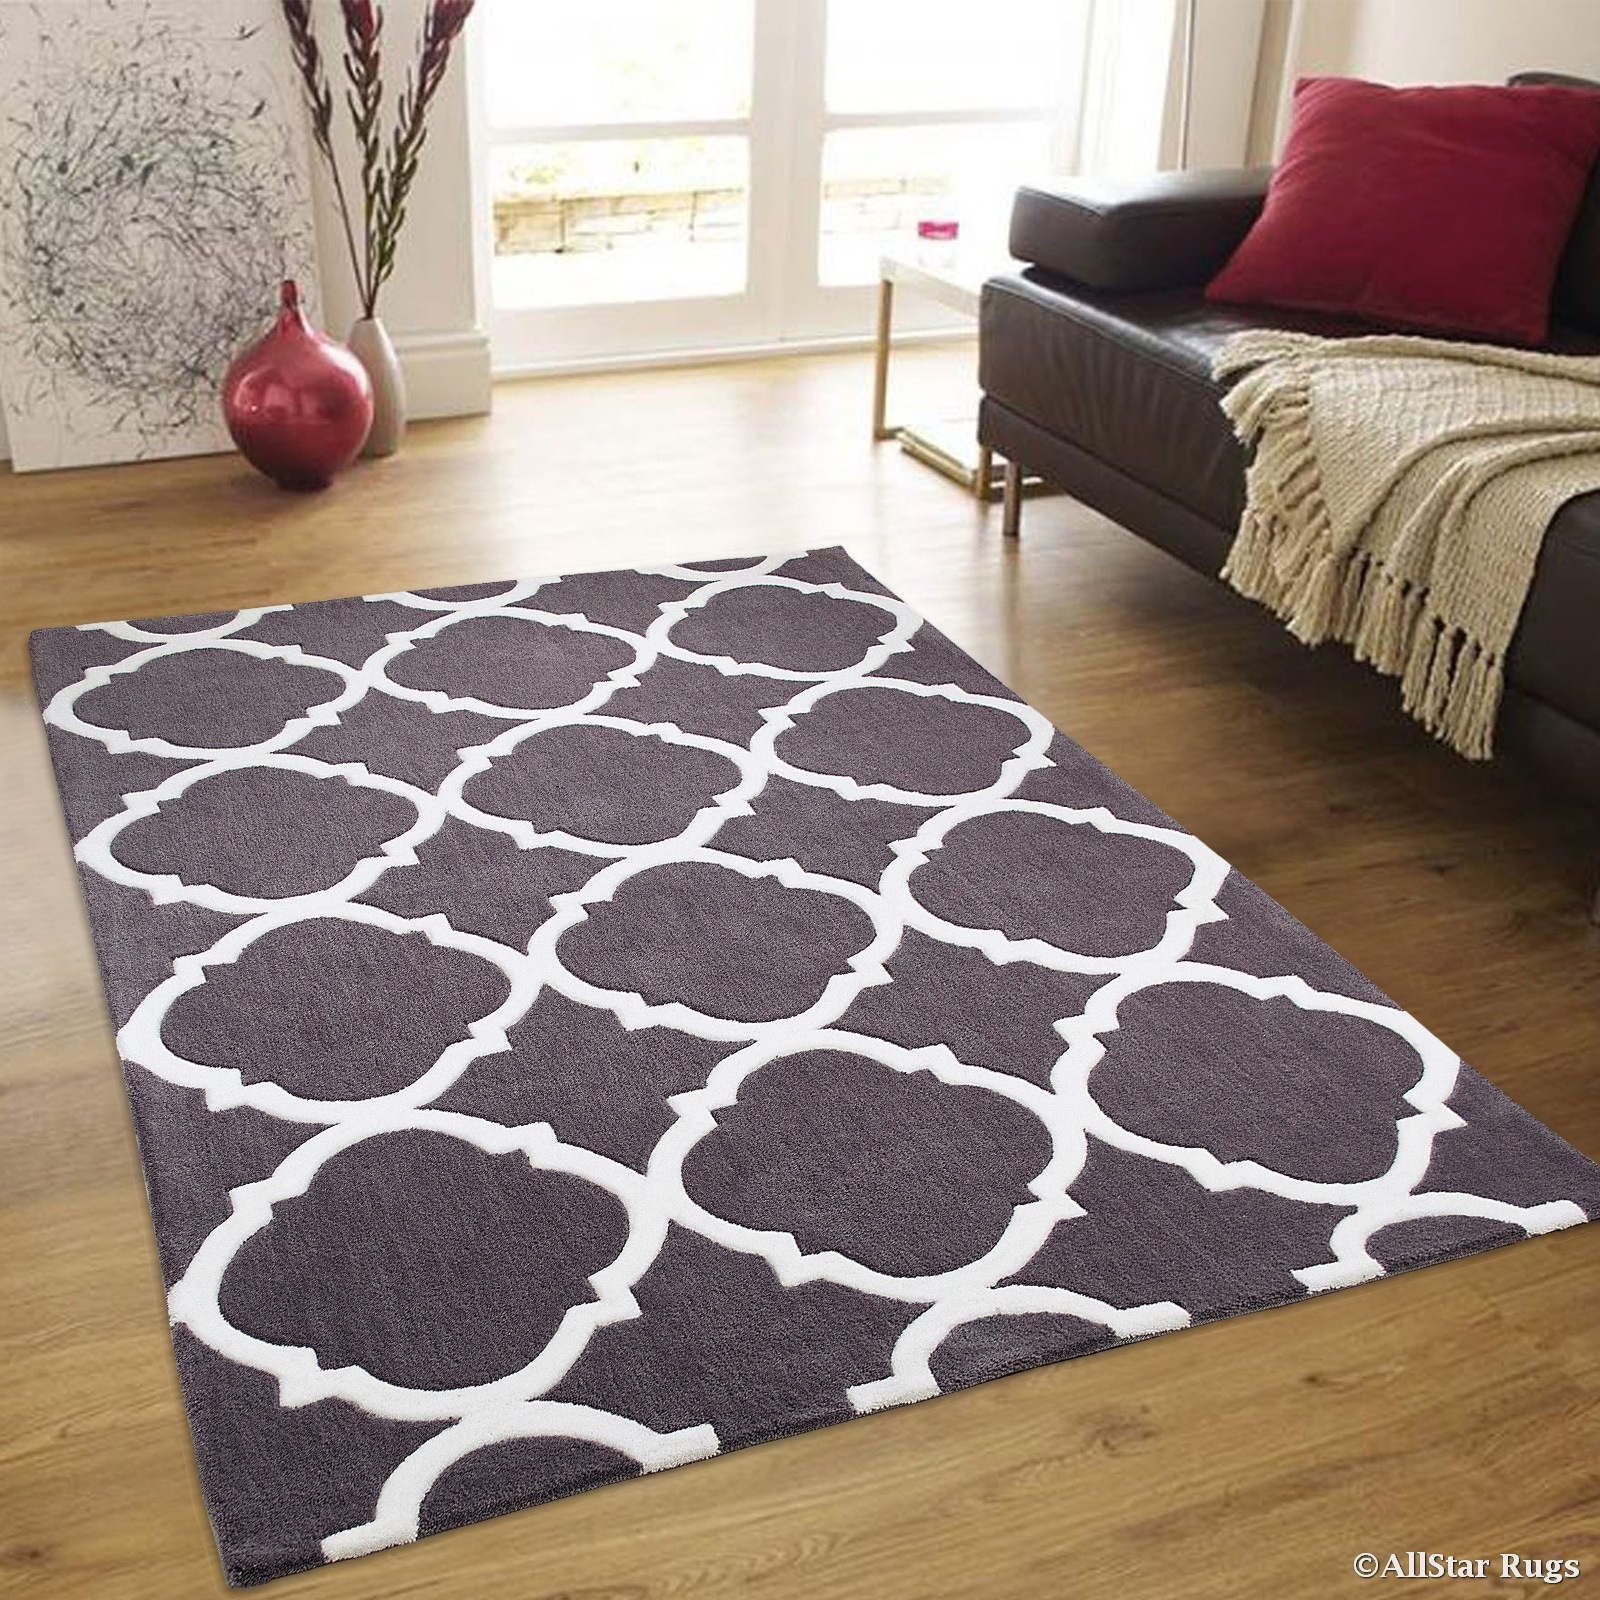 """AllStar Grey Hand Made Modern. Floral. design Area Rug with Dimensional hand-carving highlights (4' 11"""" x 6' 11"""")"""